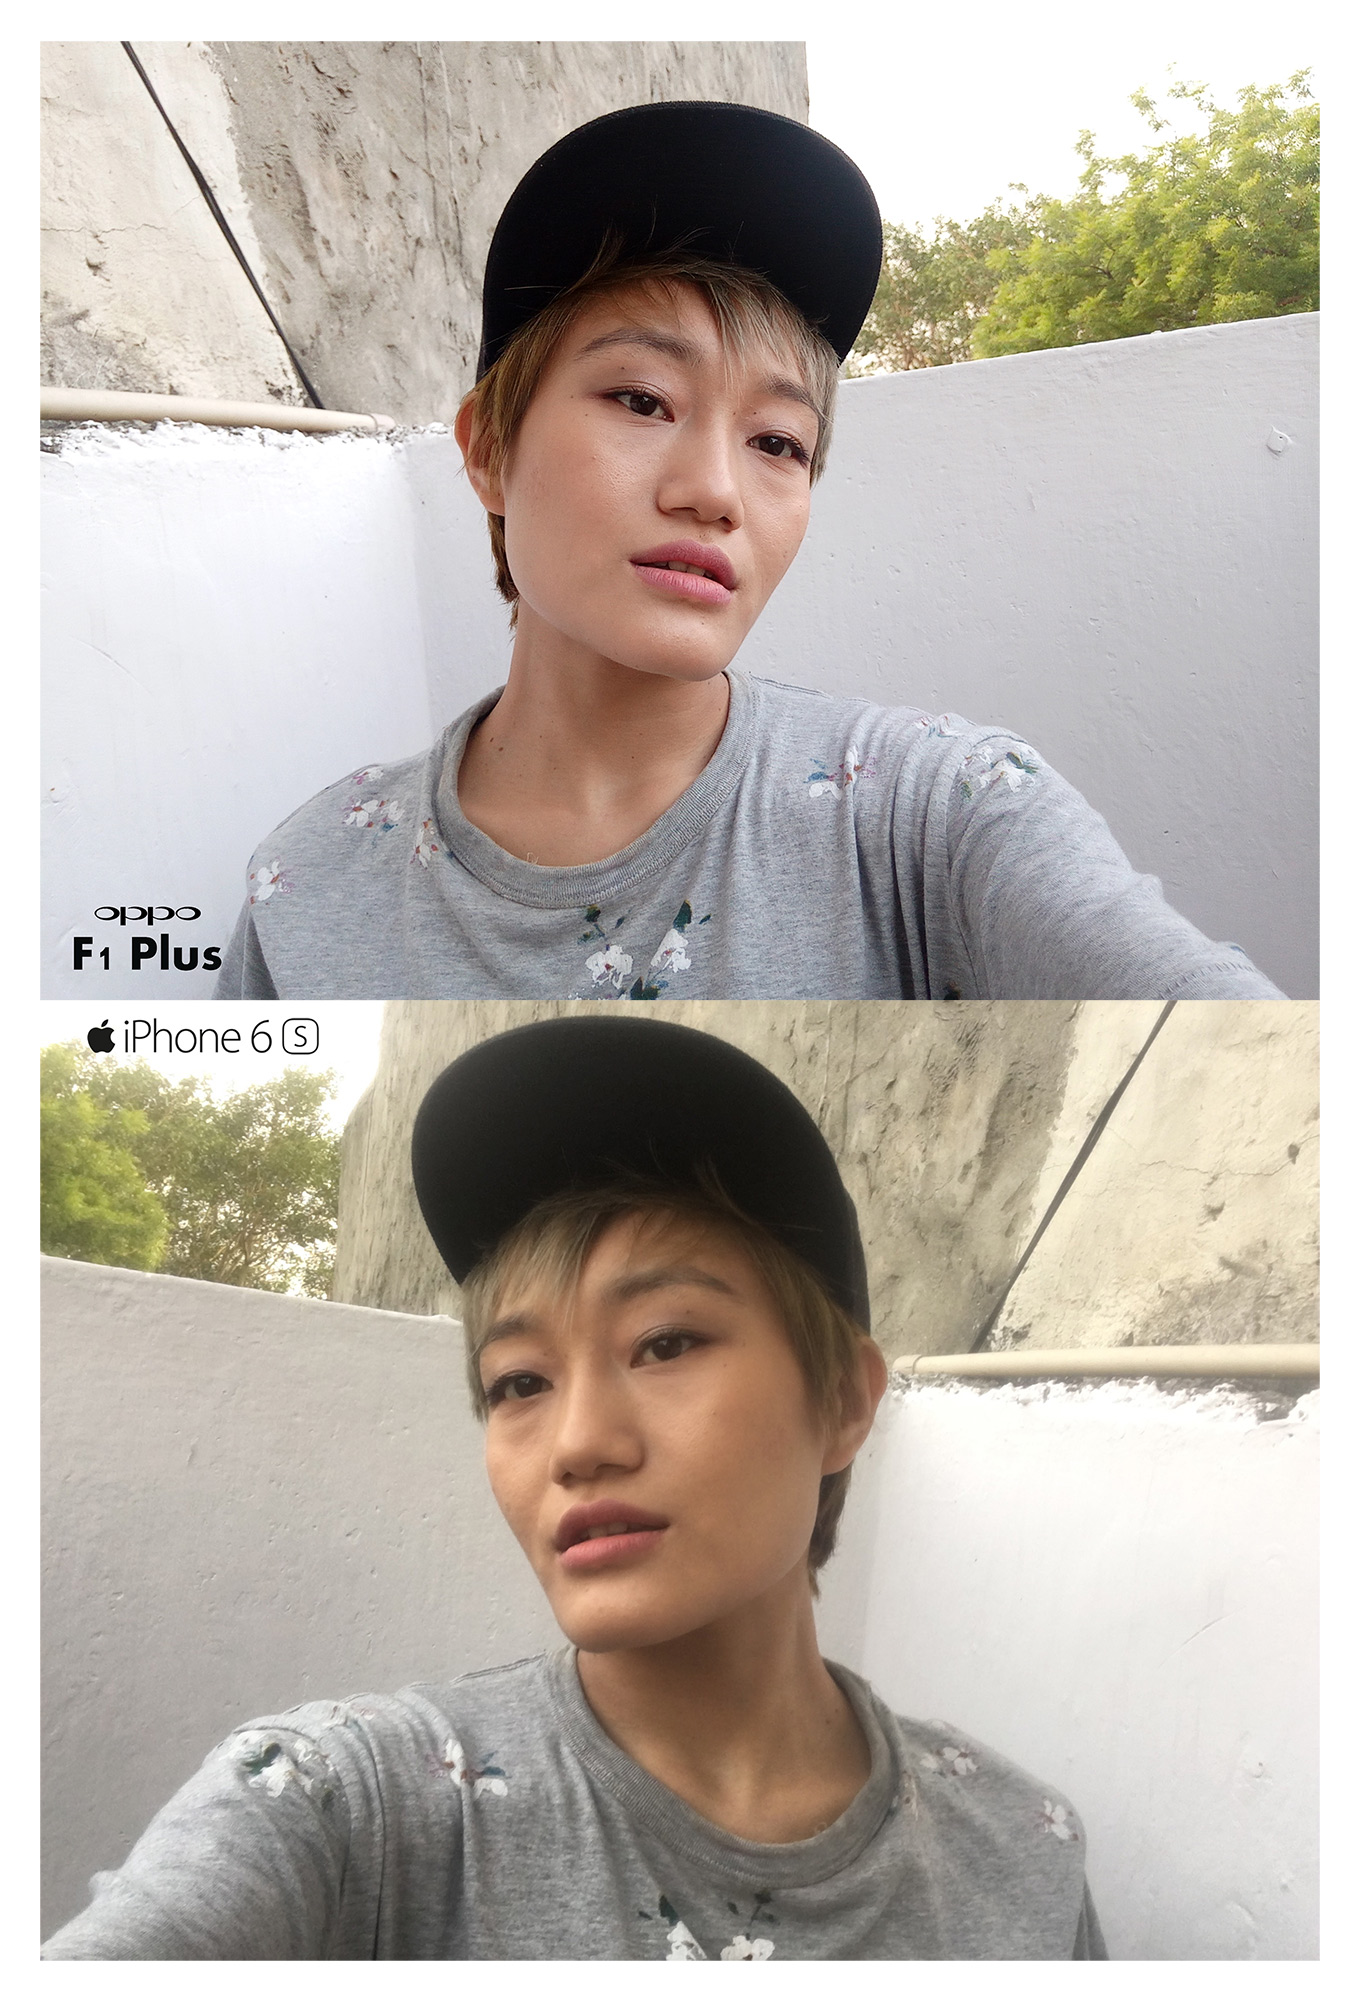 OPPO F1 Plus Vs iPhone 6s-Front-Camera-Day-Light